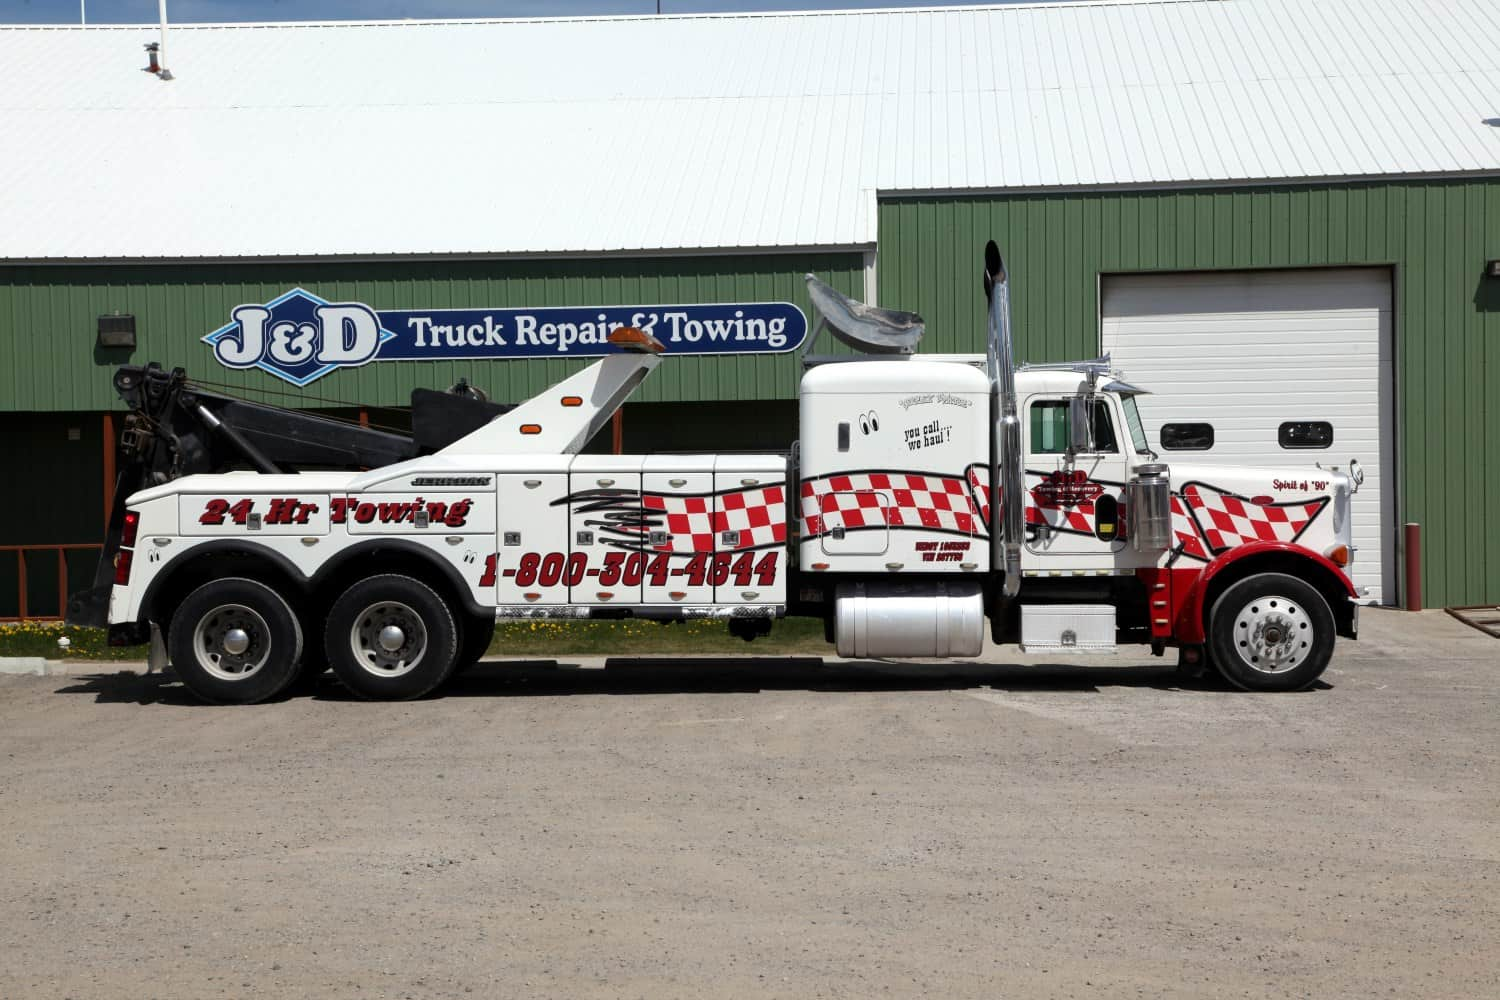 photo gallery j d truck repair towing storage and rentals j d truck repair towing storage